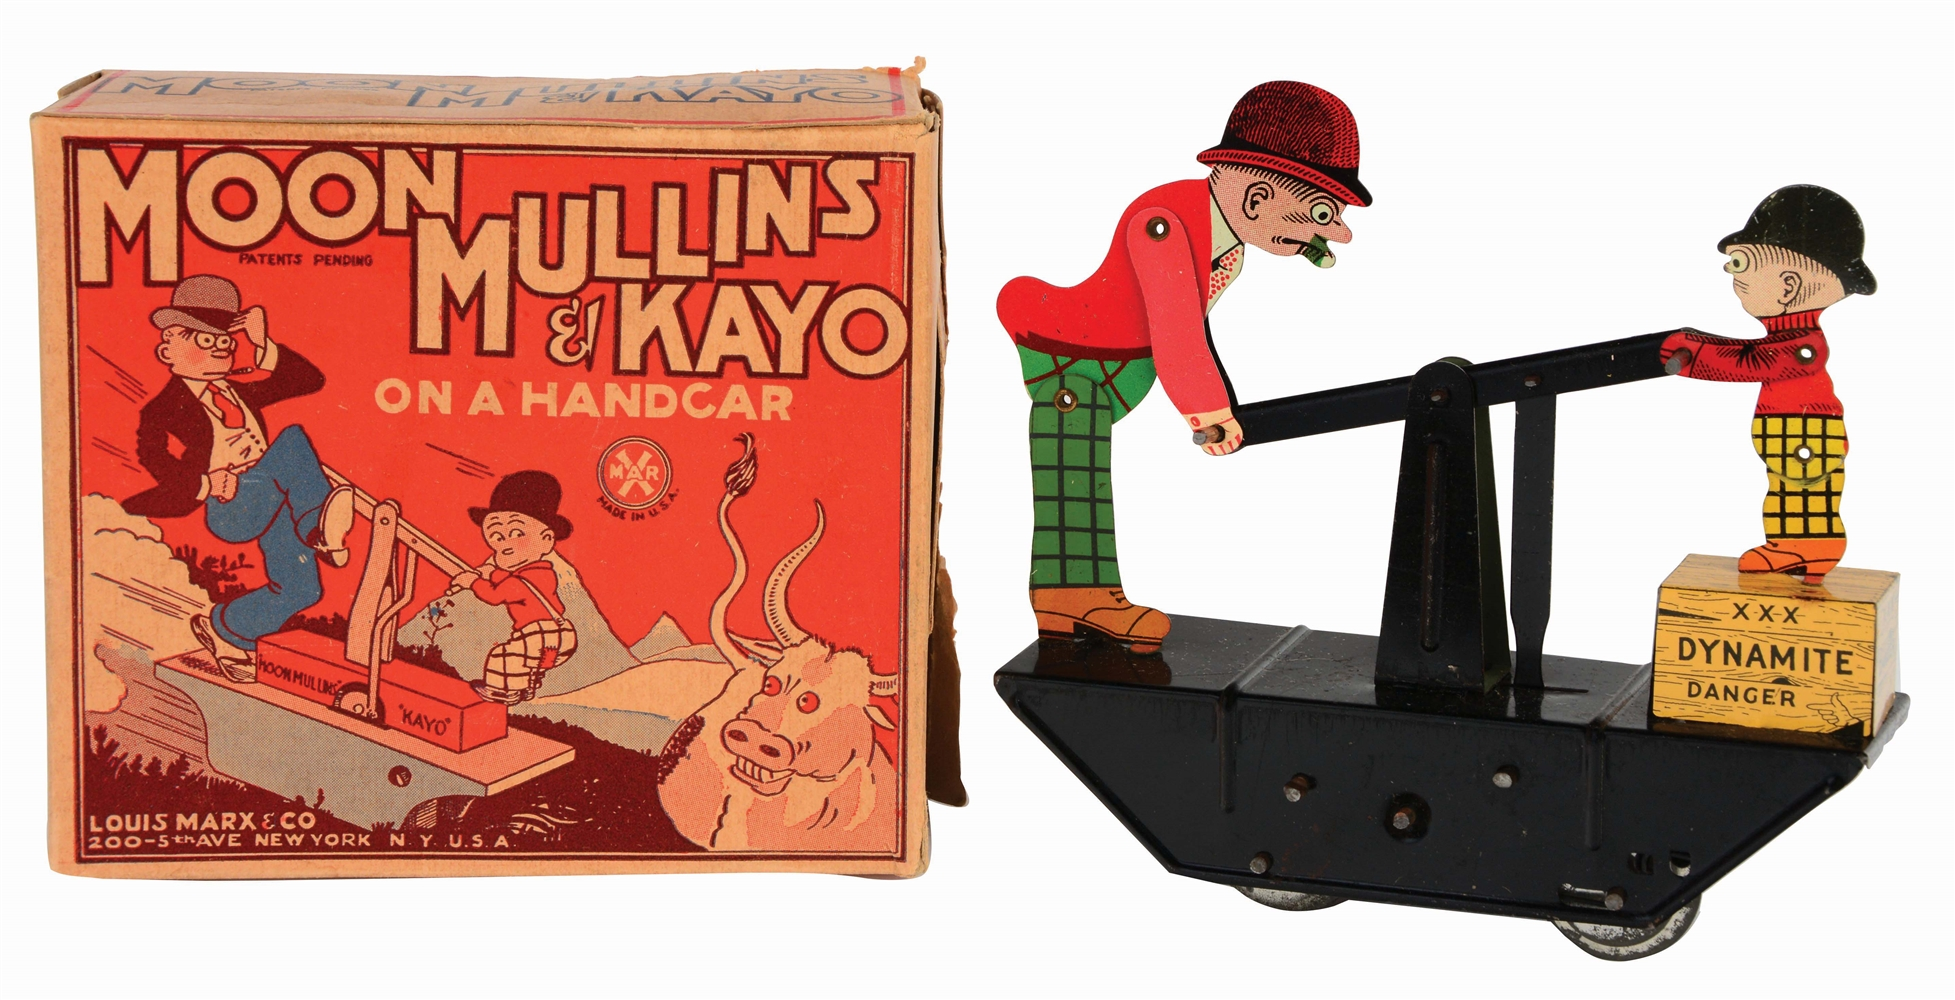 MARX TIN-LITHO WIND-UP MOON MULLINS & KAYO HANDCAR TOY IN ORIGINAL BOX.